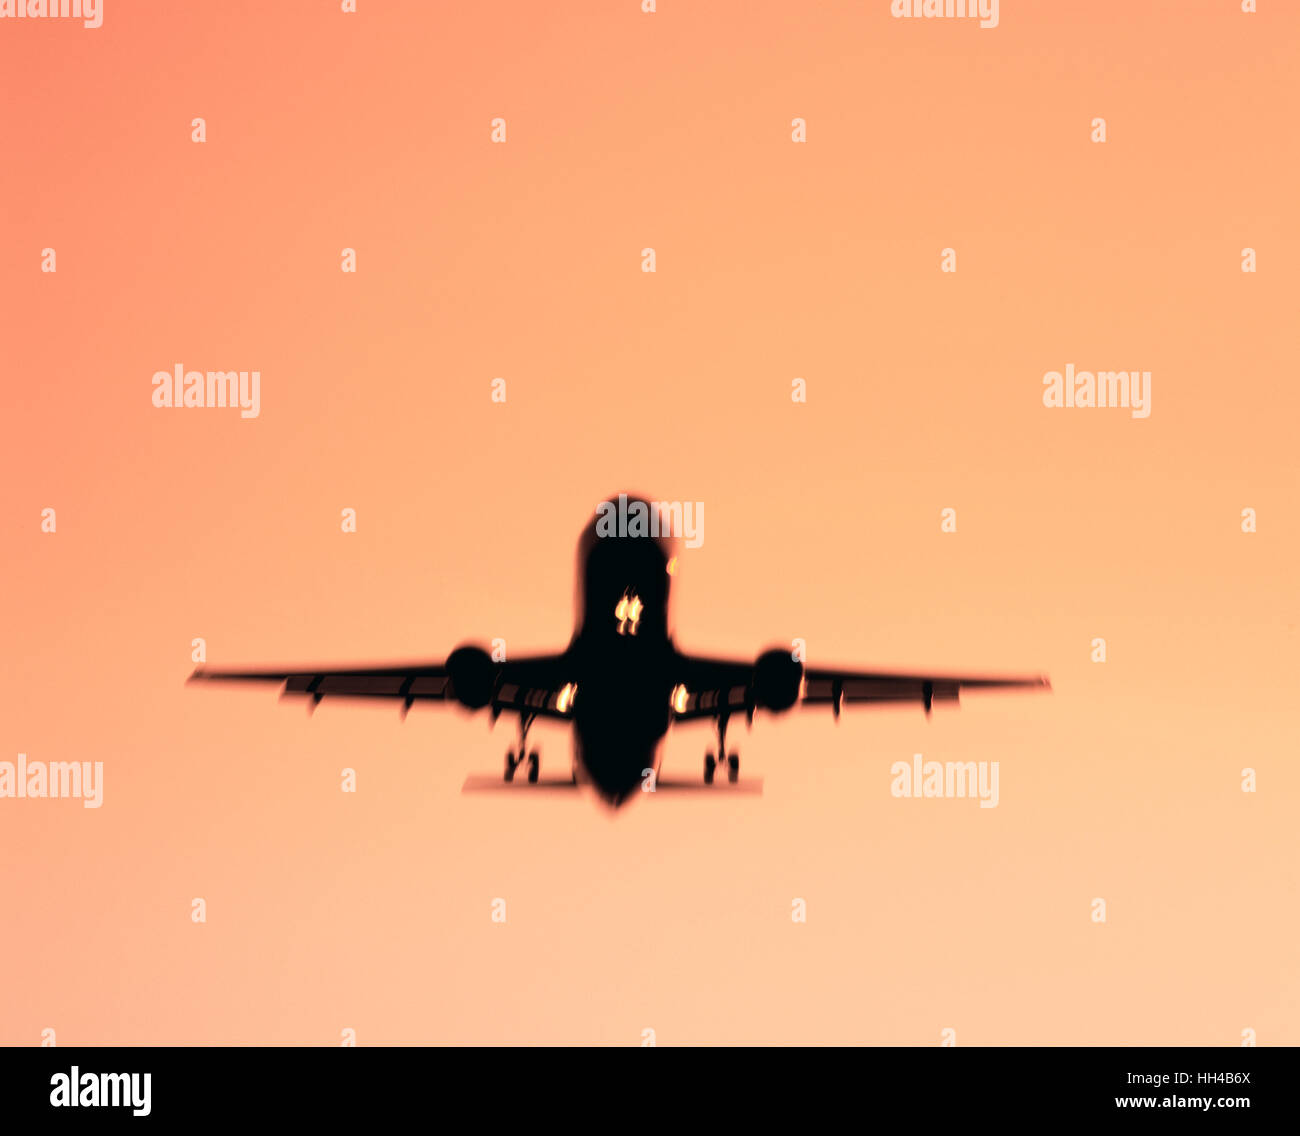 Commercial airliner on final approach to runway, London, England, UK - Stock Image